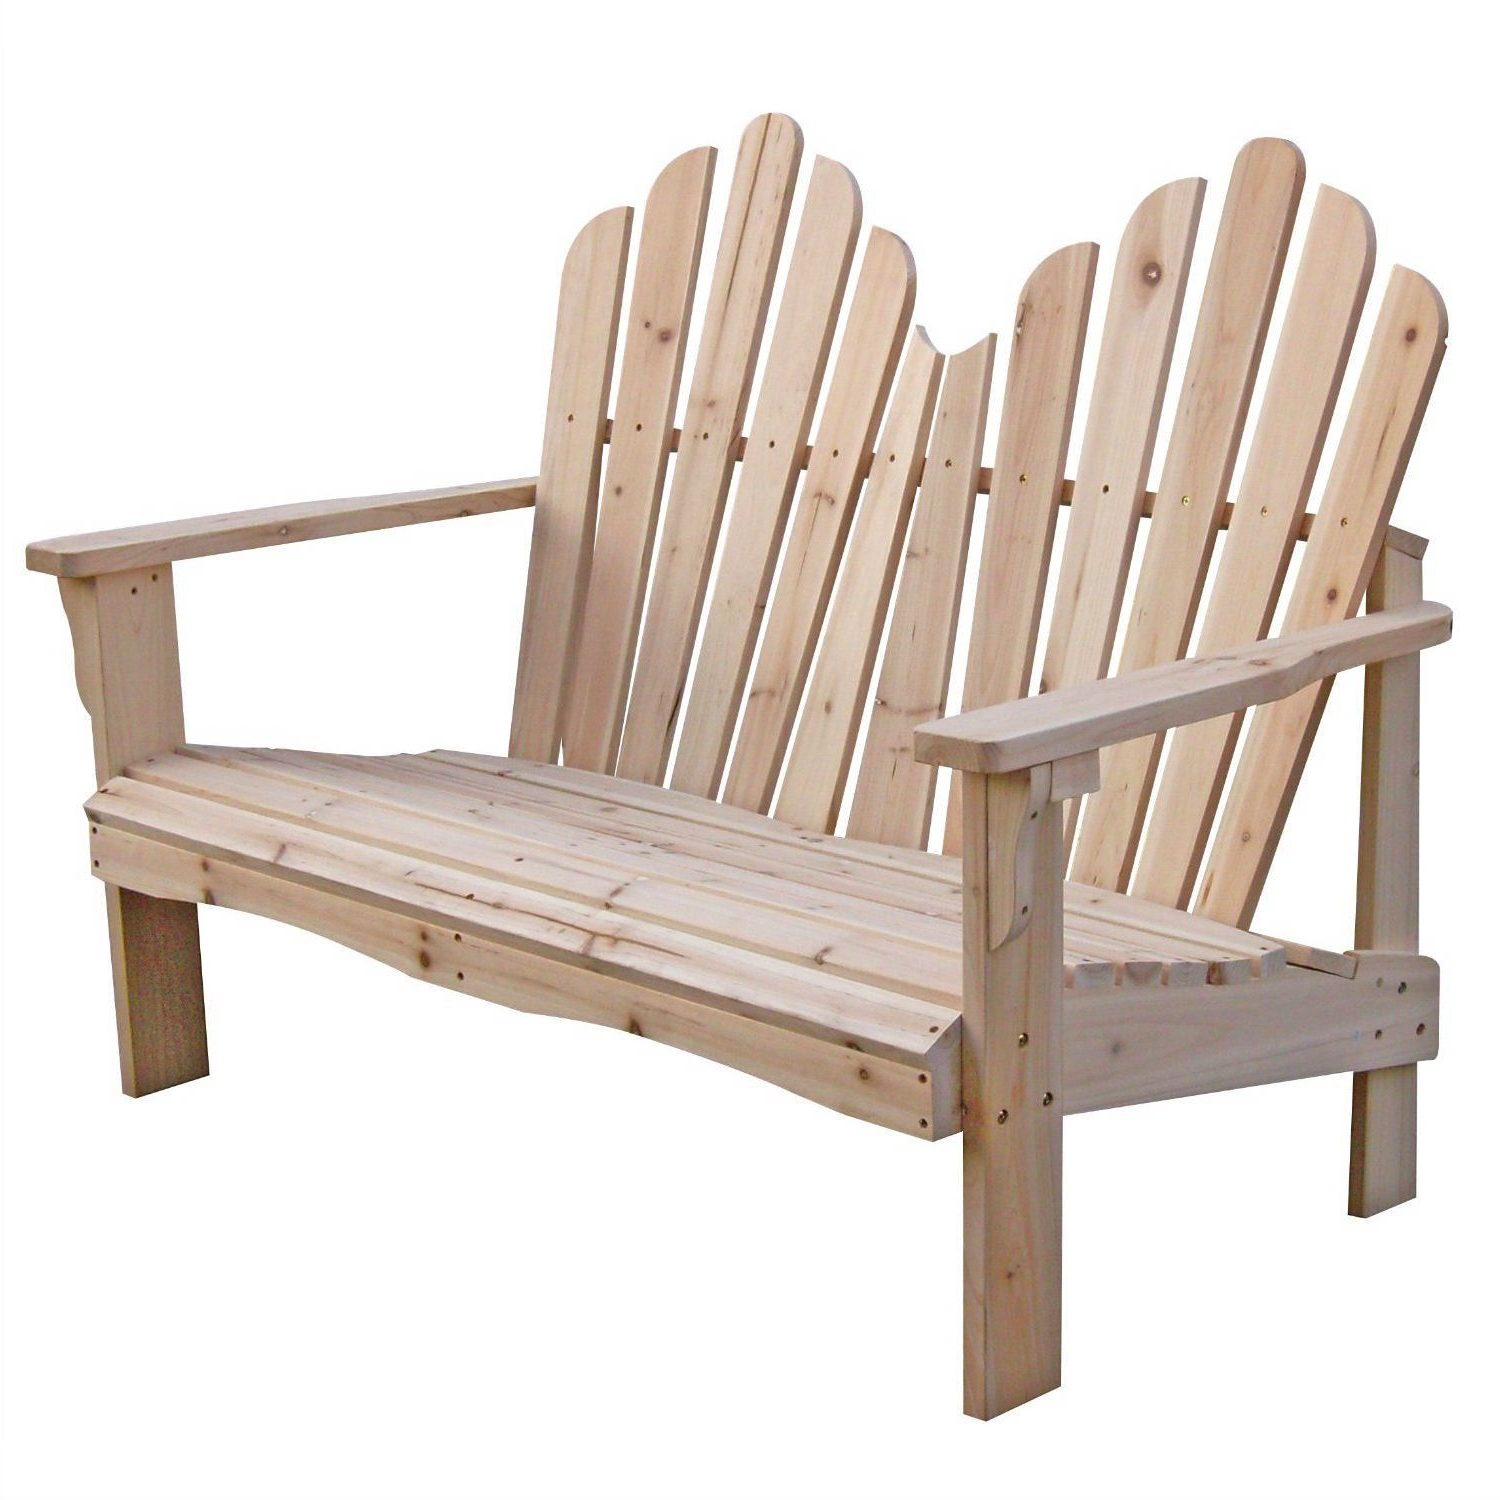 Most Recent 2 Person Natural Cedar Wood Outdoor Gliders Intended For Cedar Wood Outdoor Patio 2 Seat Adirondack Chair Style (Gallery 28 of 30)